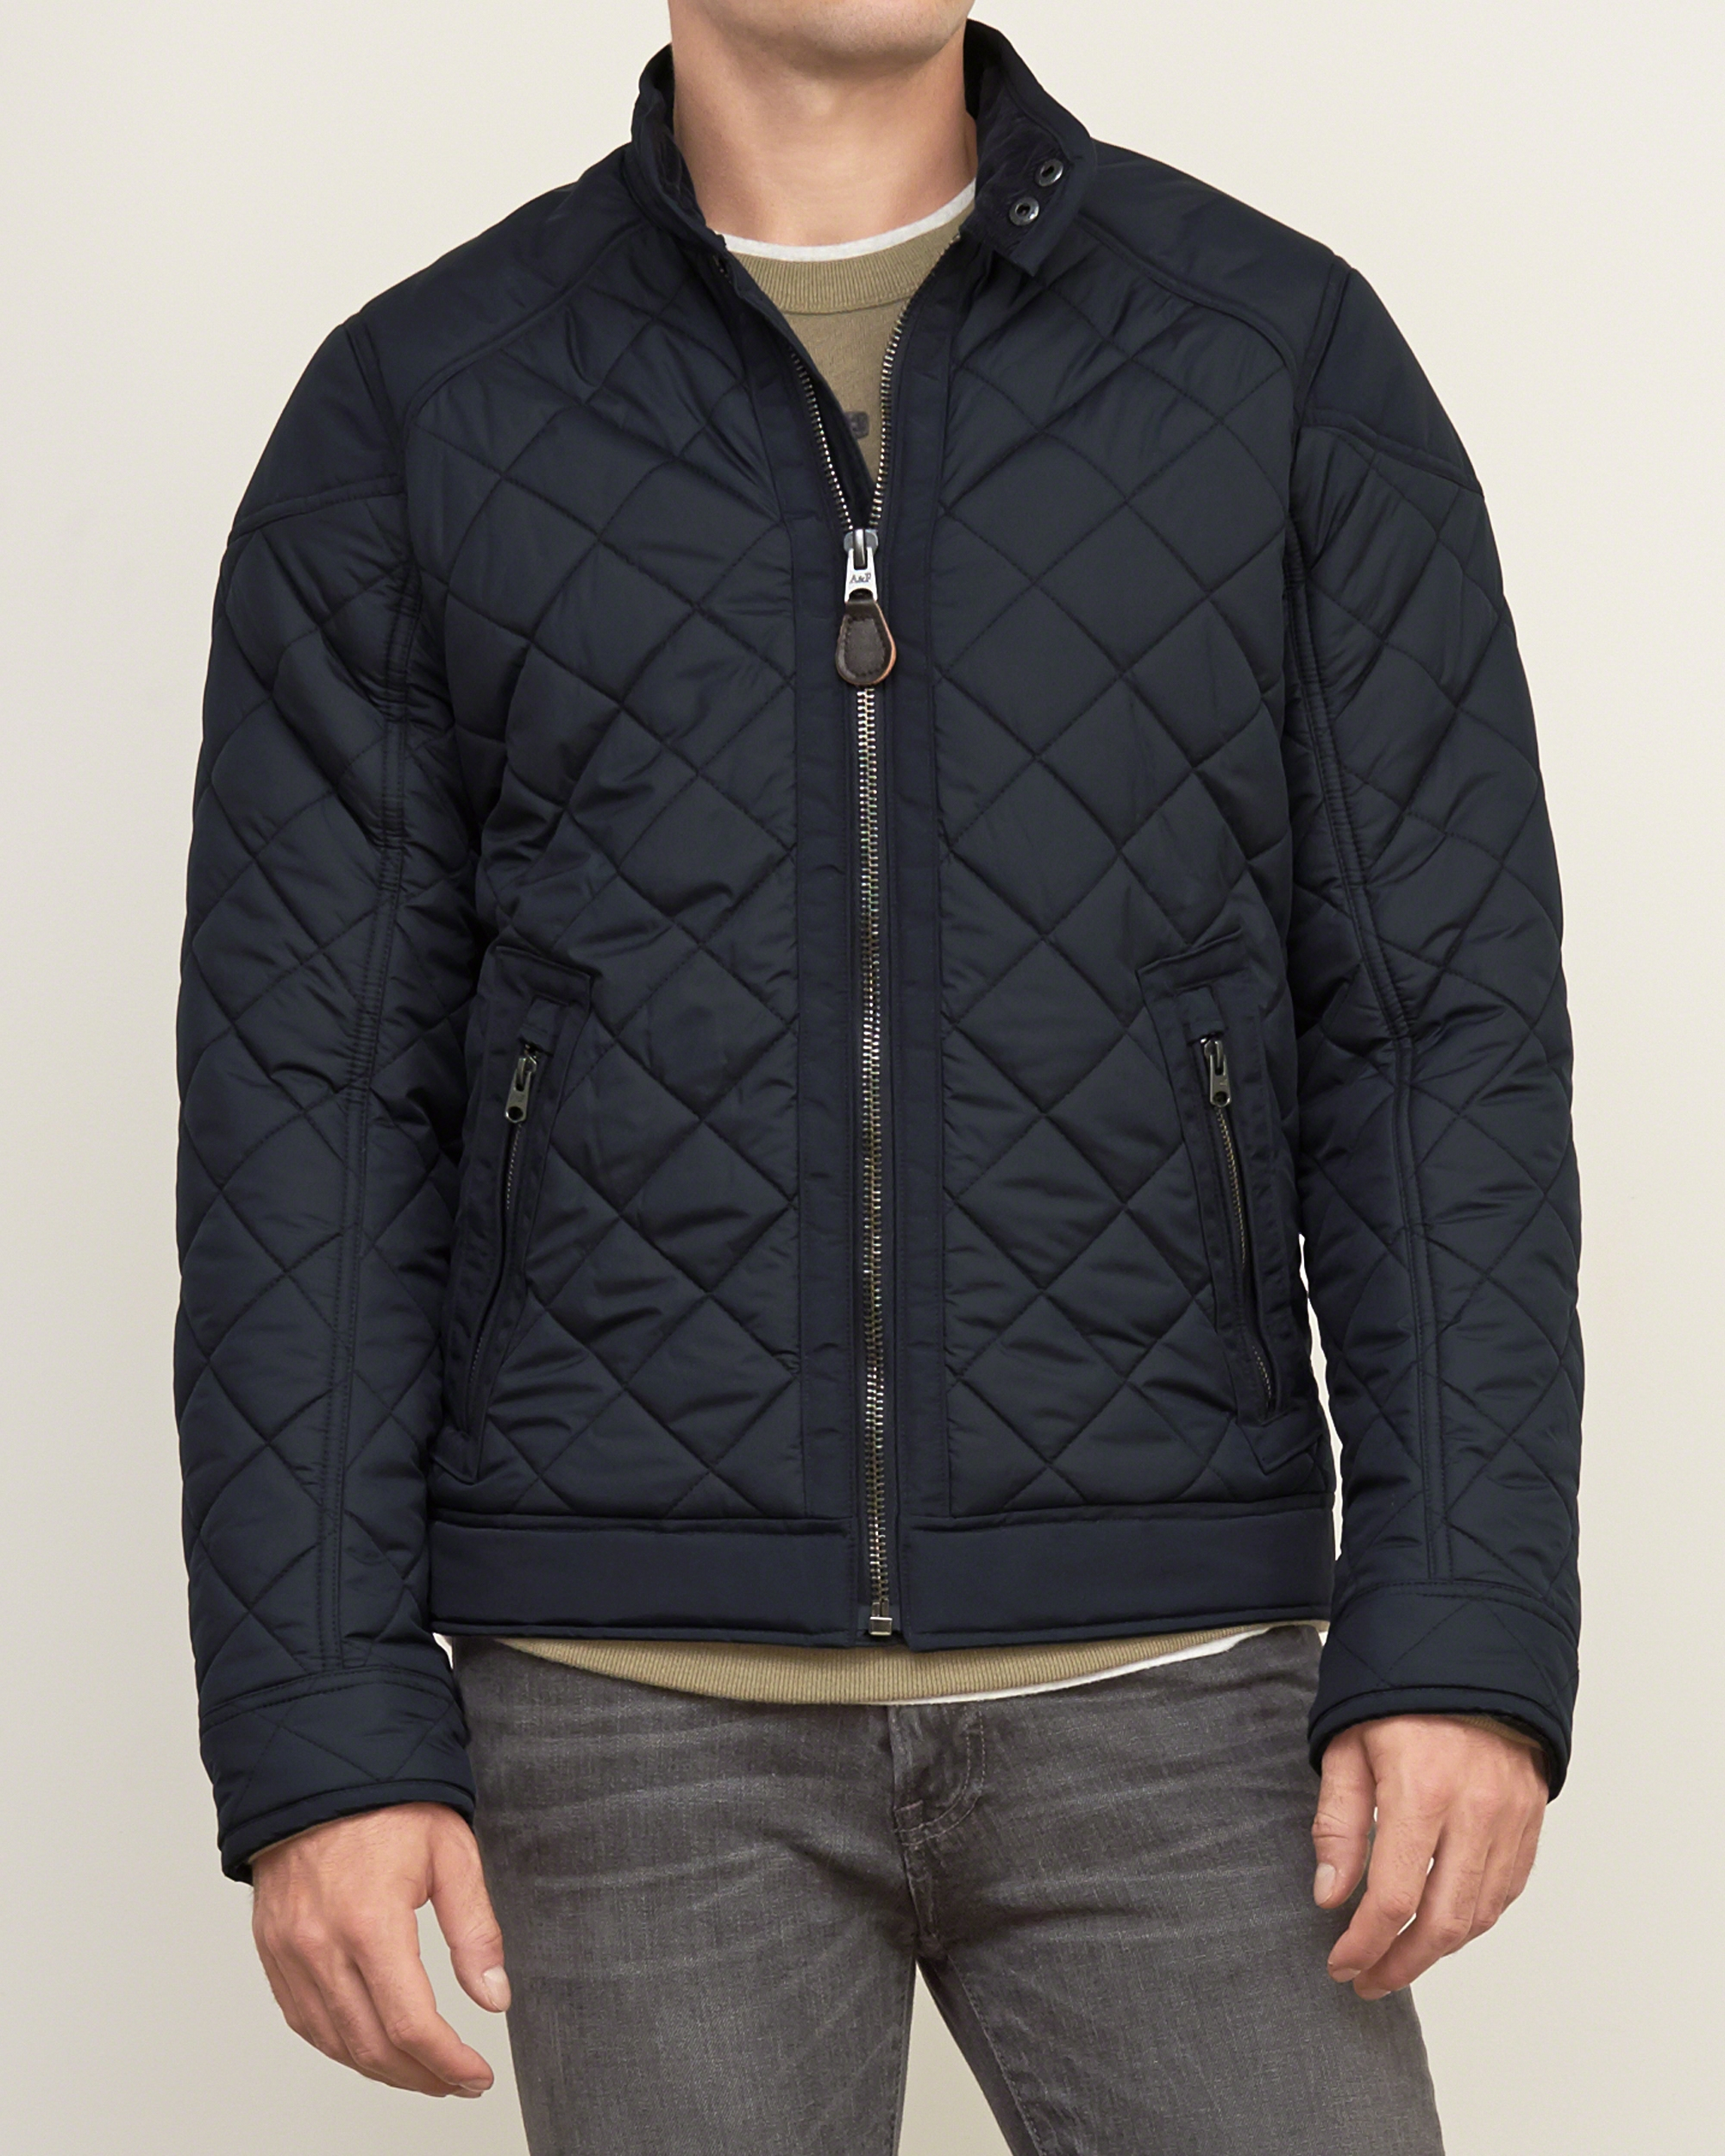 Lyst Abercrombie Amp Fitch Quilted Bomber Jacket In Black